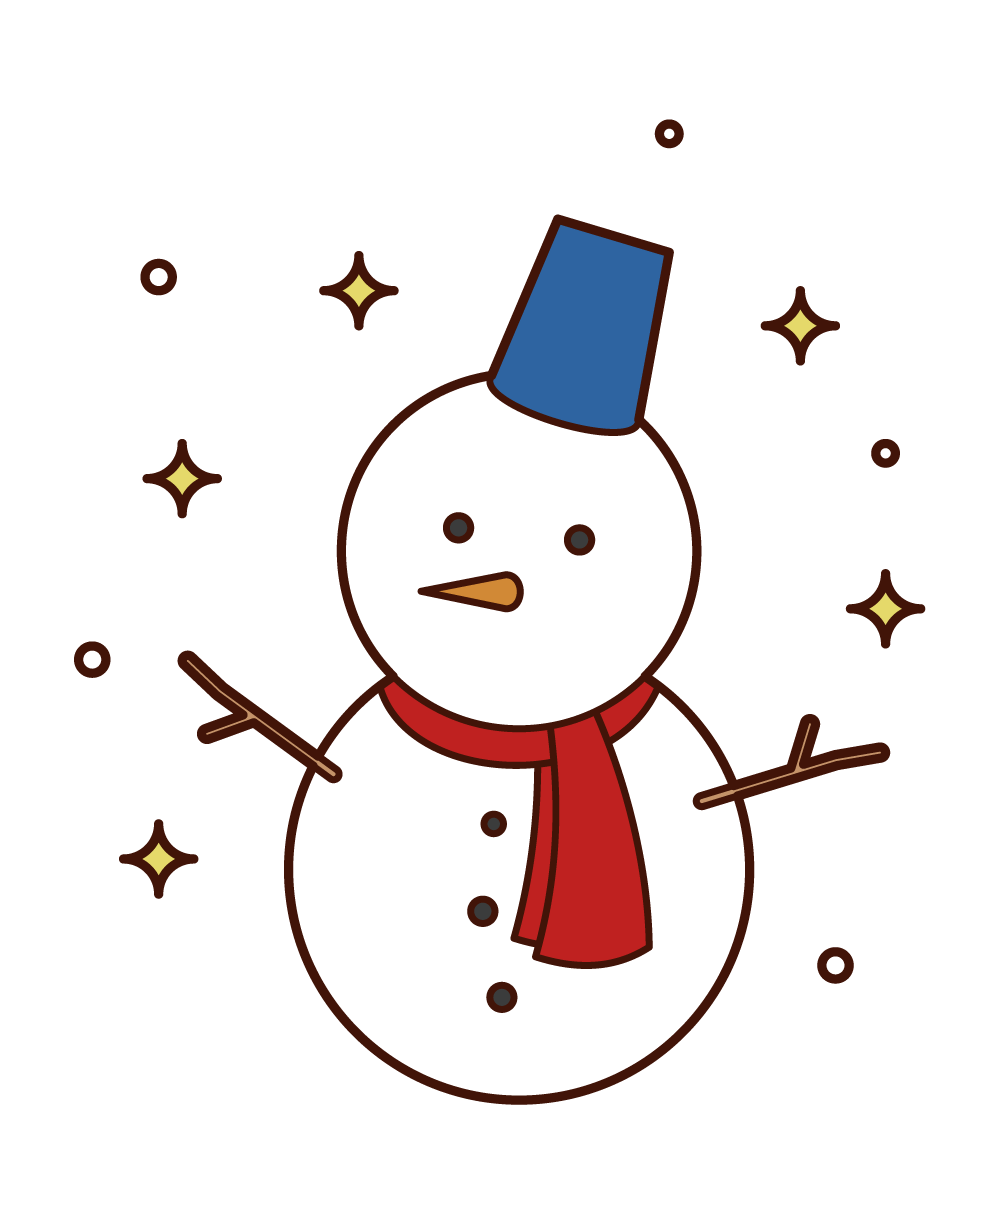 Illustration of a Snowman